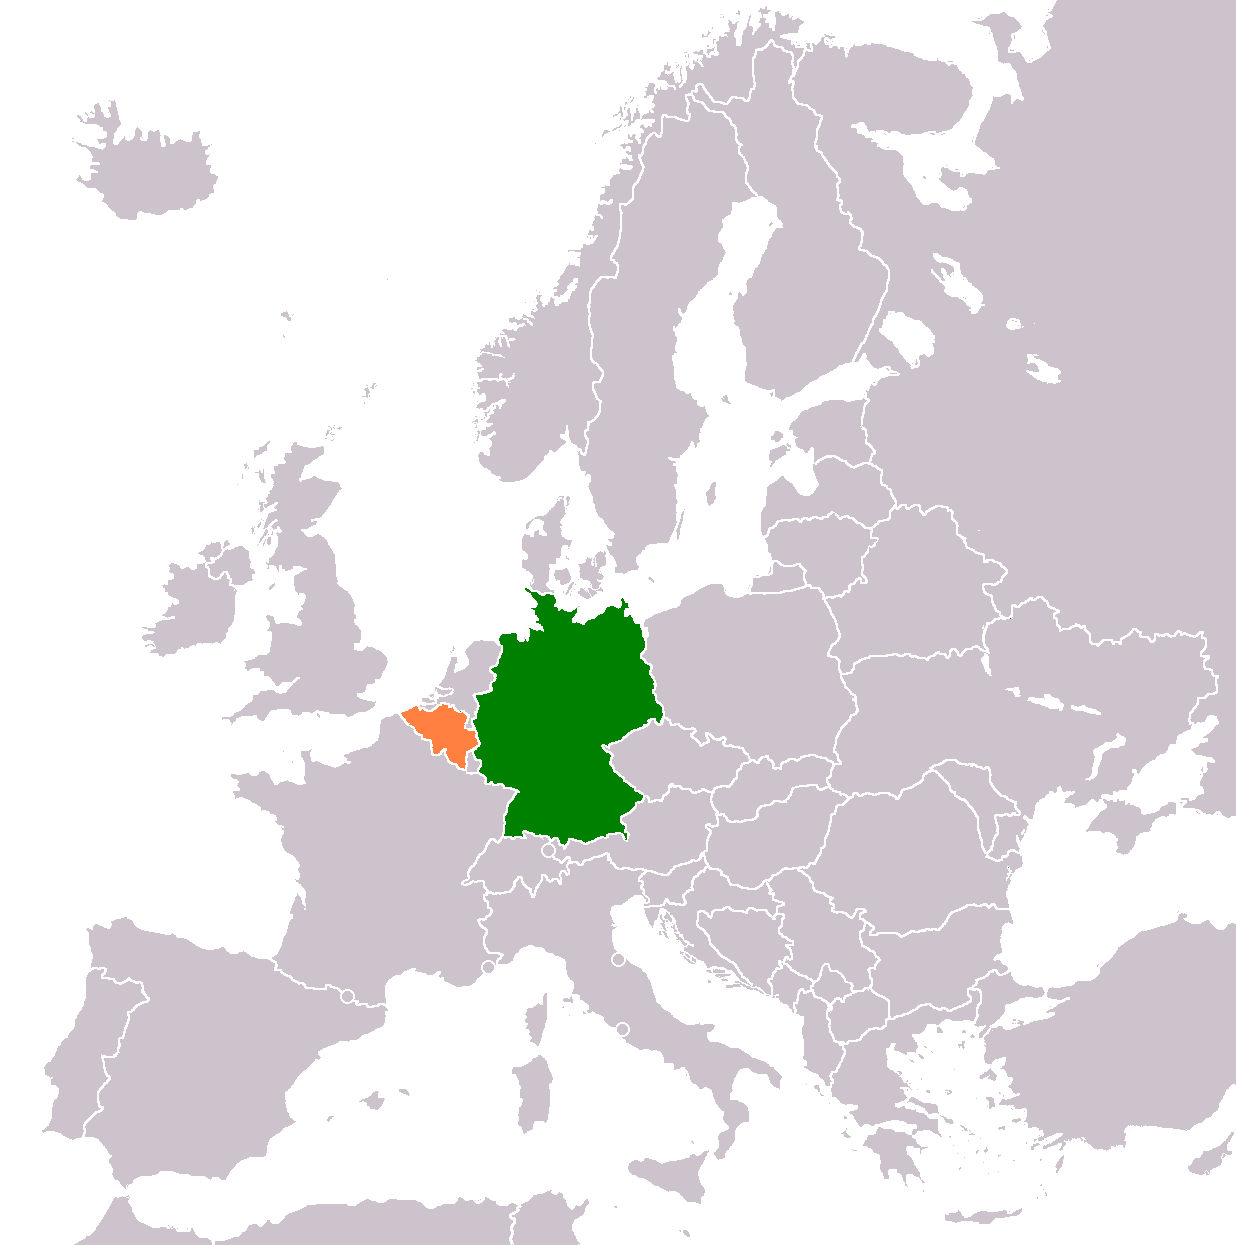 Belgium–Germany relations - Wikipedia on heligoland germany map, bismarck germany map, saale germany map, greece germany map, hohenzollern germany map, spa germany map, unesco germany map, argentina germany map, finland germany map, east prussia germany map, world war one germany map, ardennes germany map, ghent germany map, alps germany map, frisian islands germany map, algeria germany map, ems germany map, lithuania germany map, romania germany map, soviet germany map,